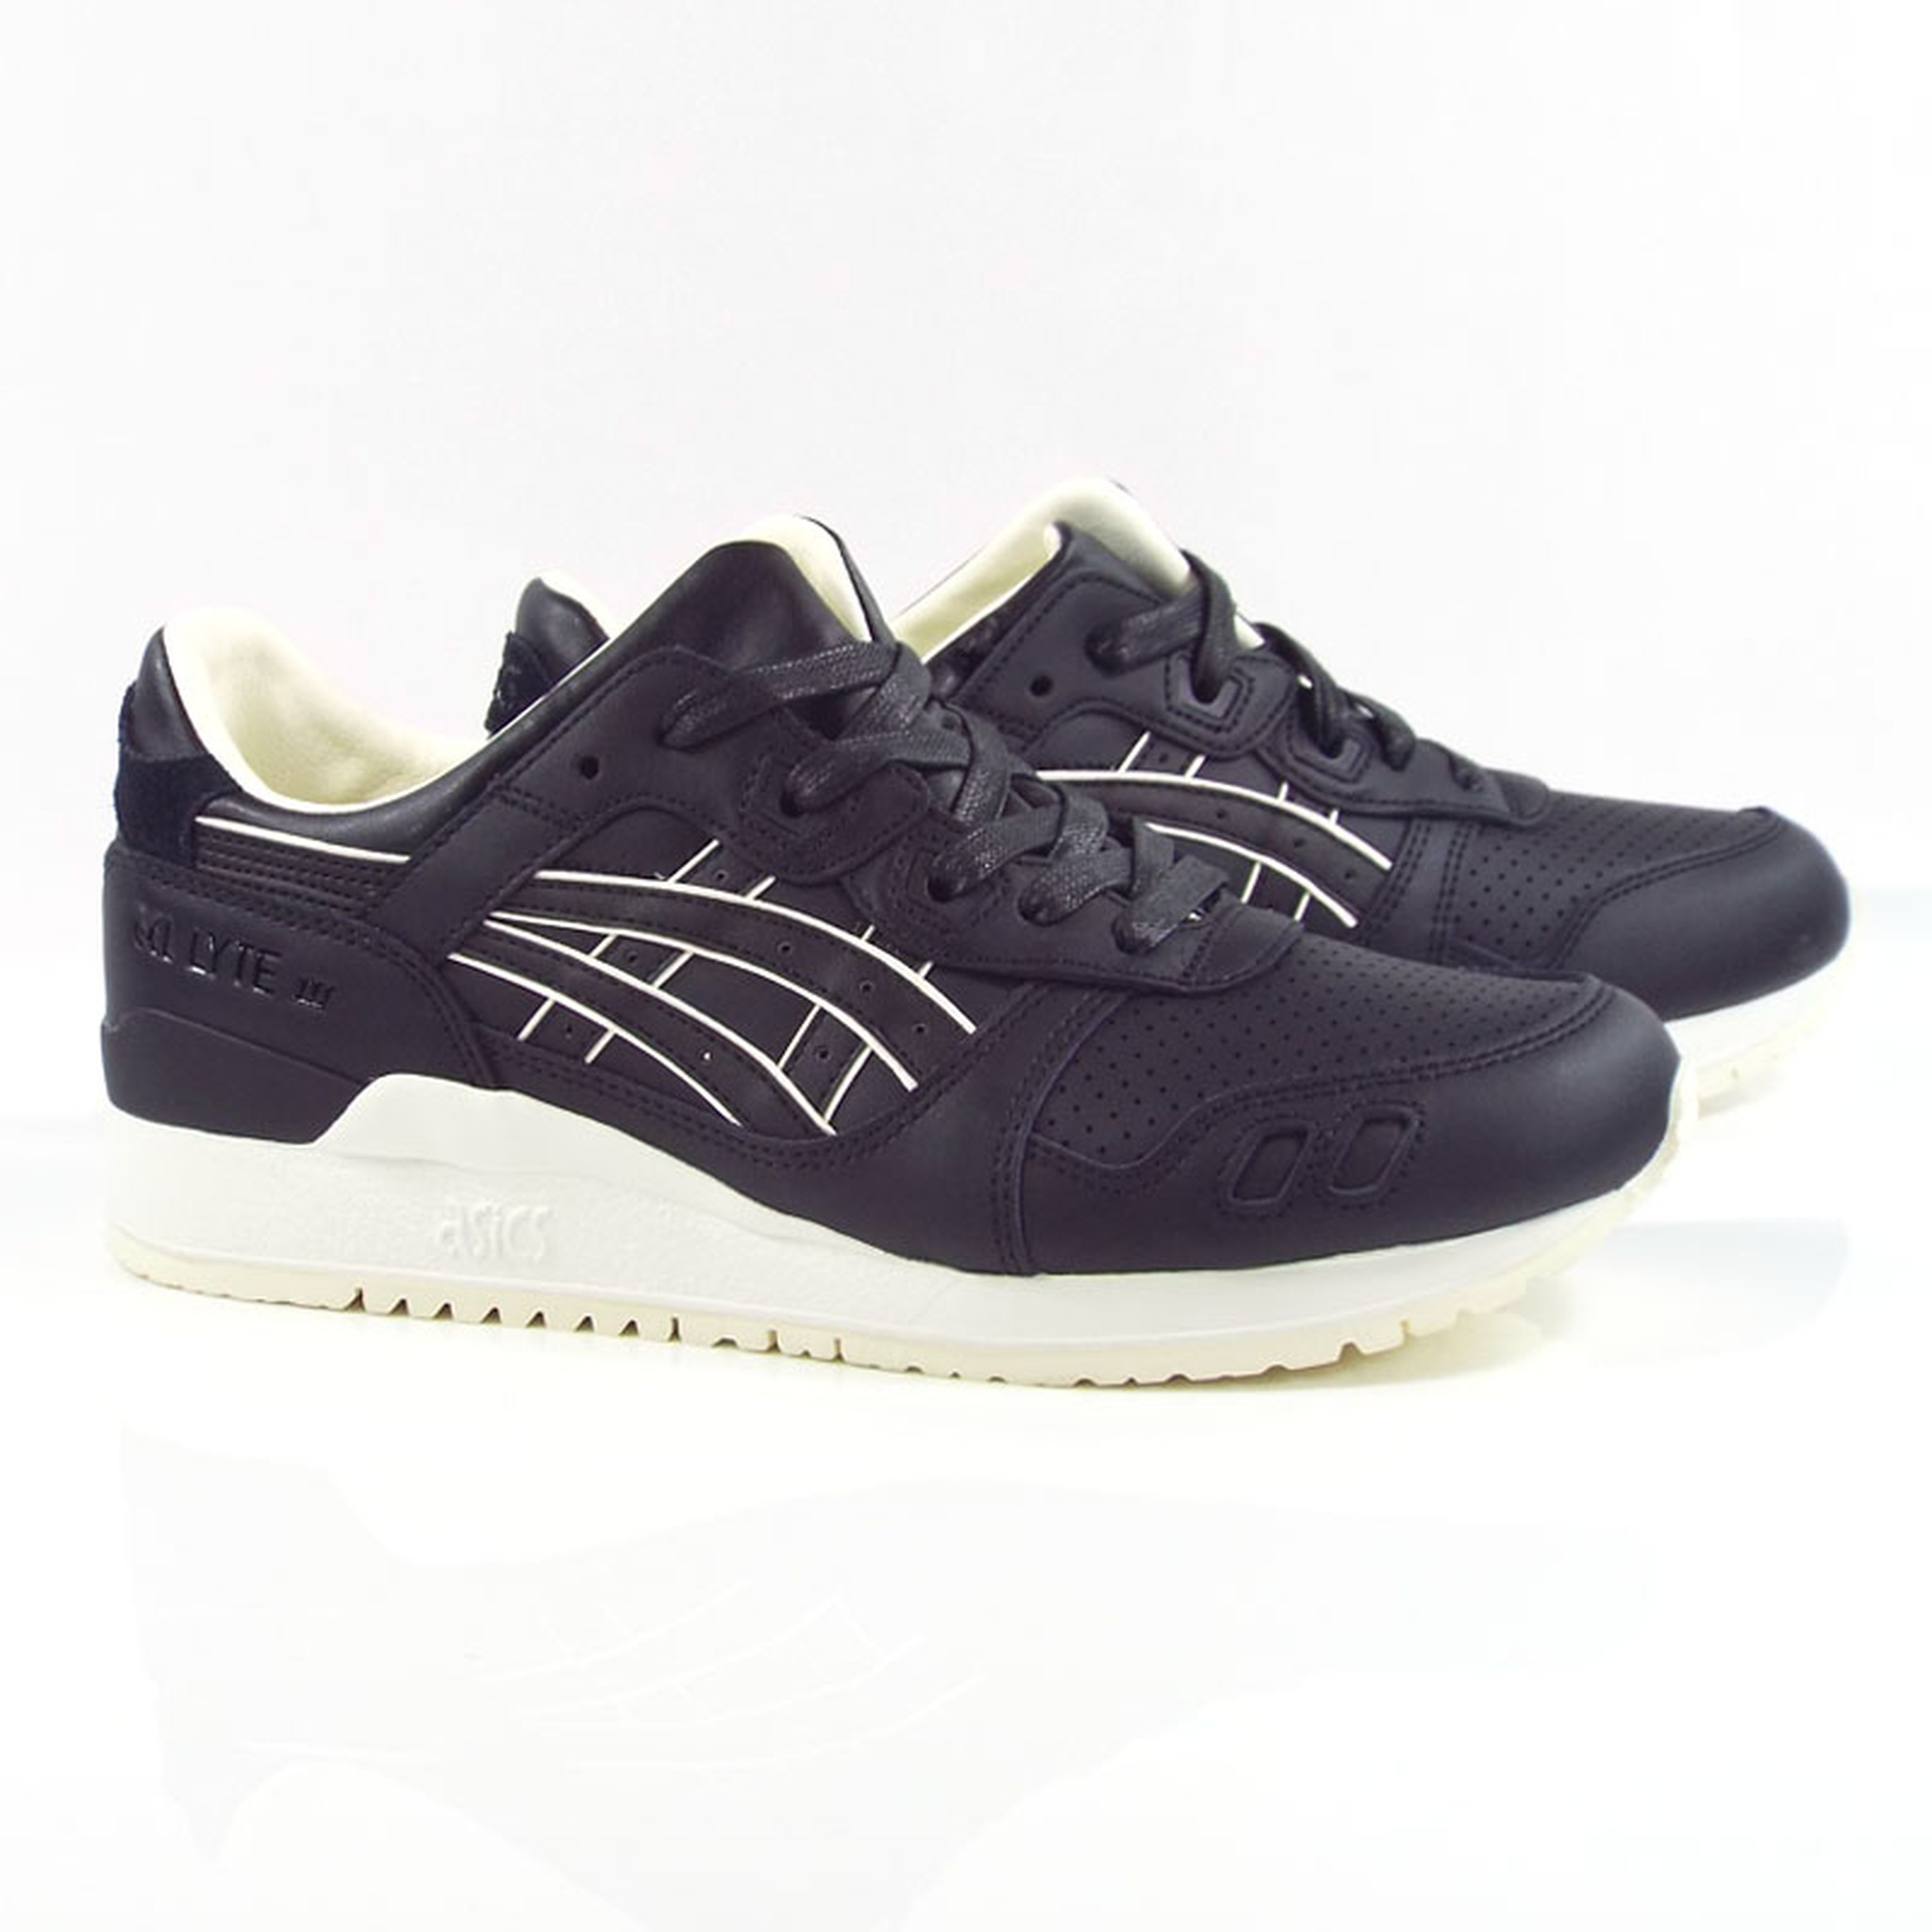 newest collection 1e94d cd6c6 Asics Gel Lyte III Shoes - Black/Black